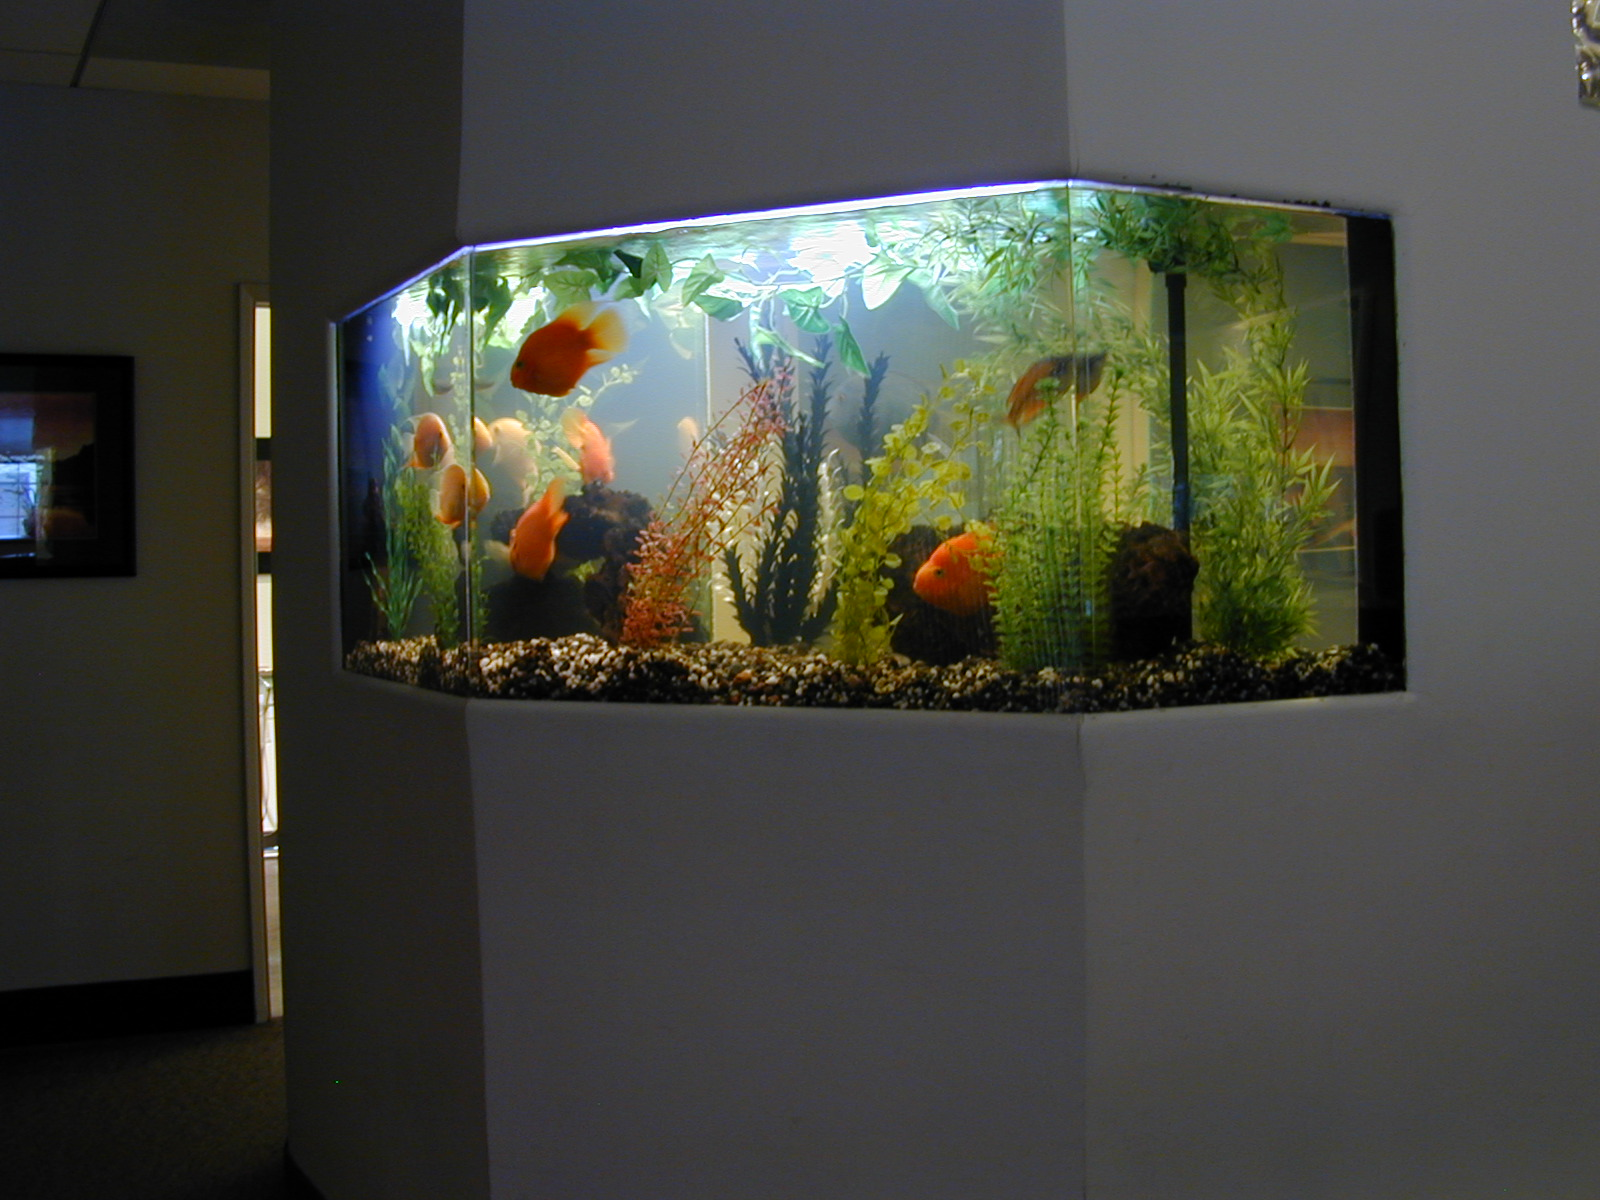 125 Gallon Freshwater Fish Tank, Aquarium Design, Marine